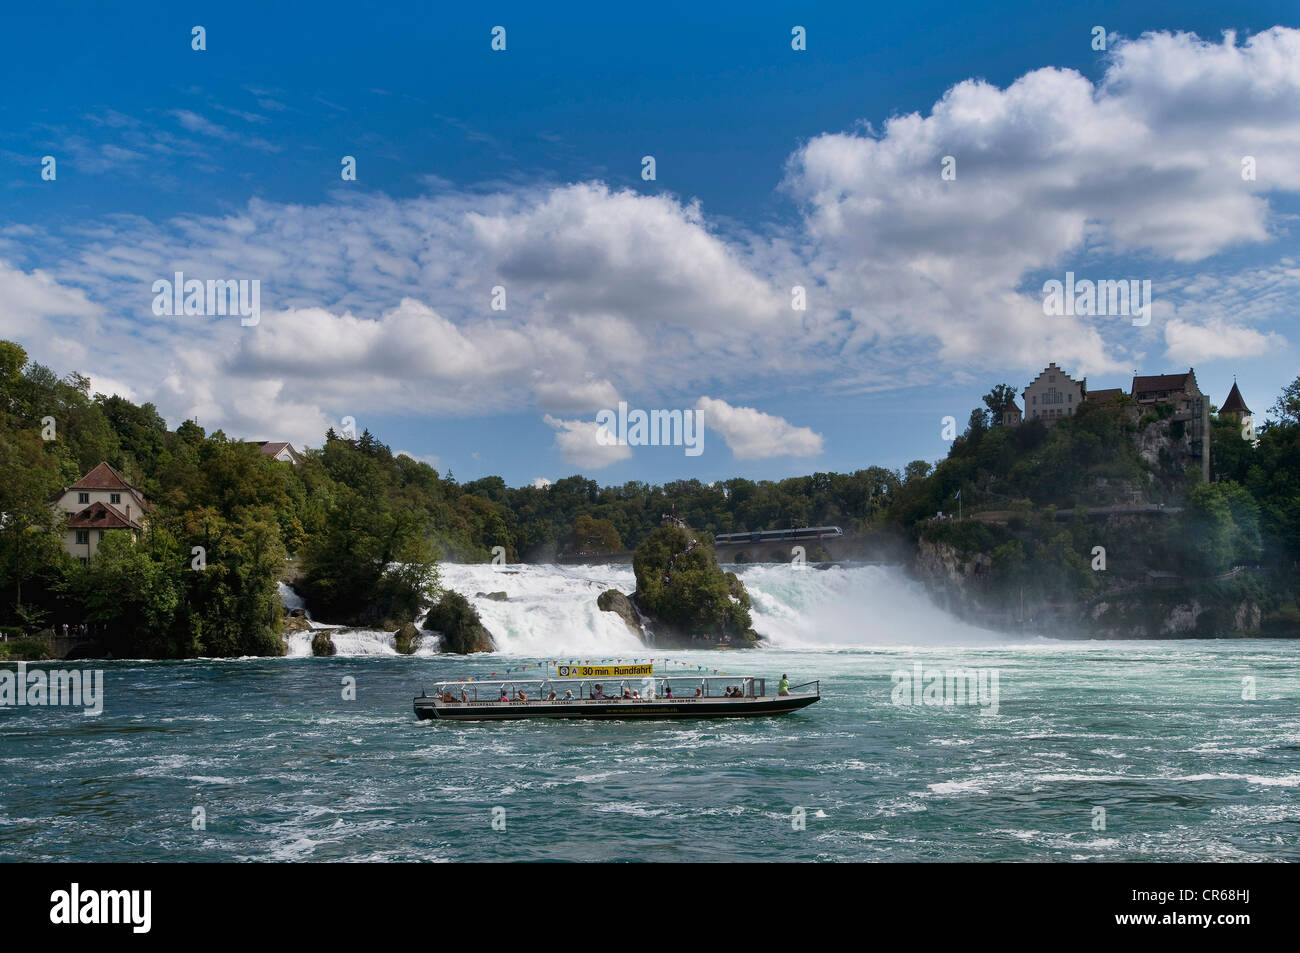 Rhine Falls near Schaffhausen, excursion boat with tourists cruising in front of it, Switzerland, Europe - Stock Image